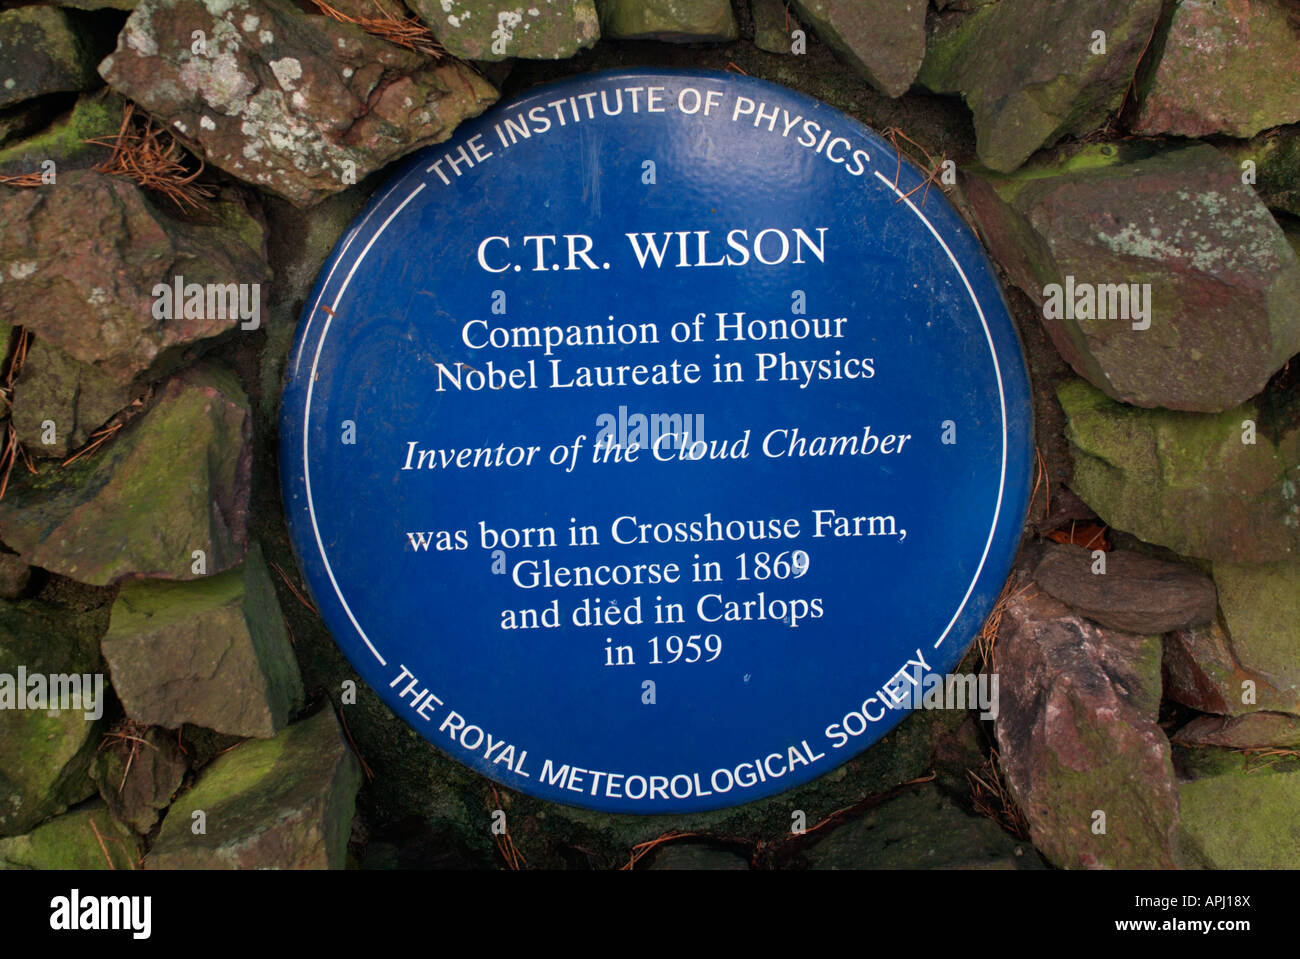 Blue plaque commemorating the achievements of the Physicist C.T.R. Wilson - Stock Image